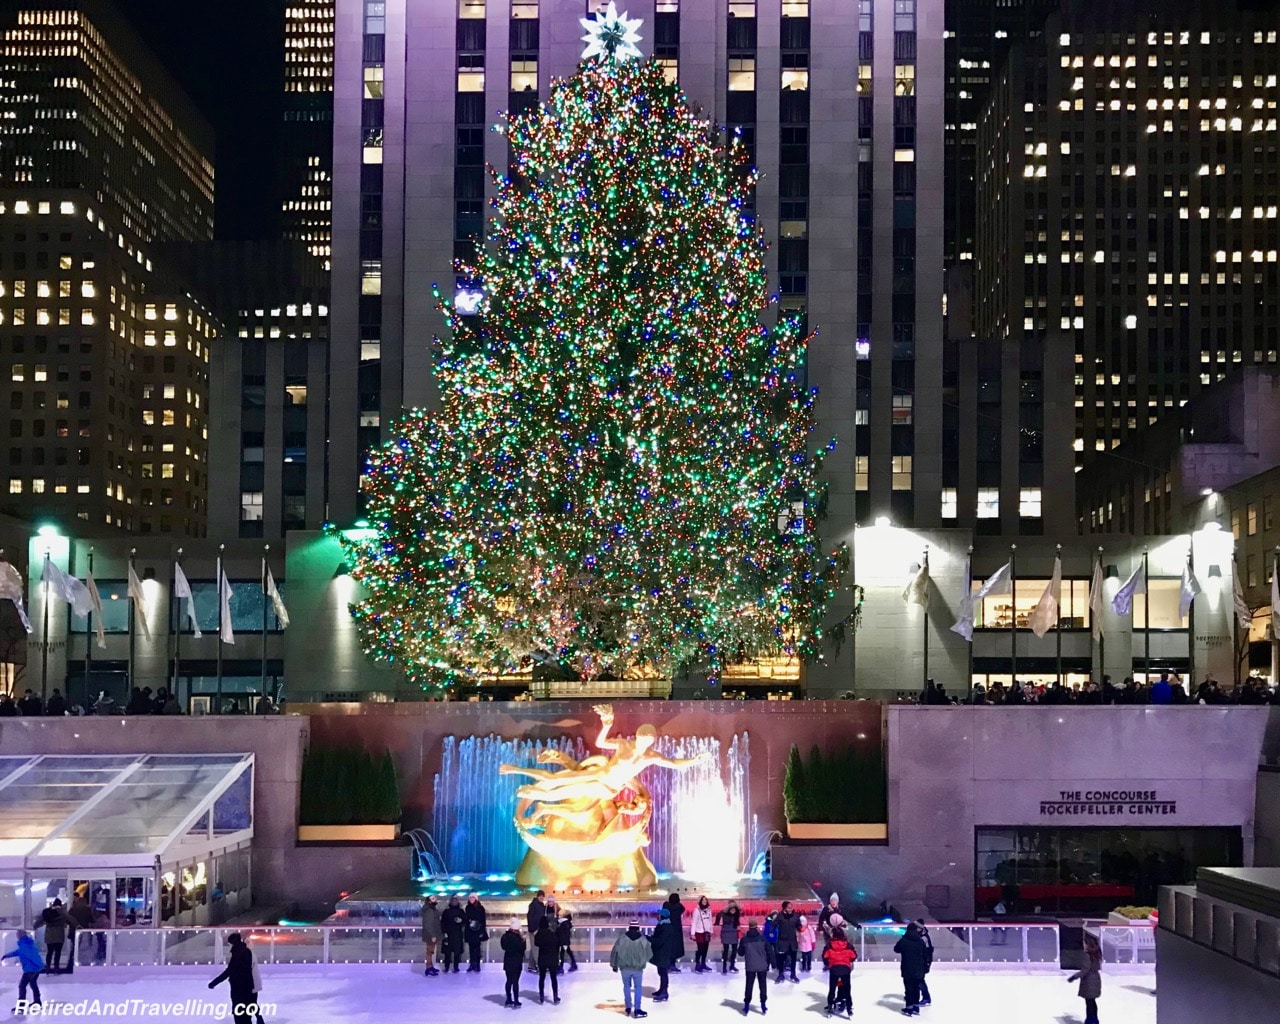 Rockefeller Centre Christmas Tree and Decor - Holiday Visit To NYC.jpg